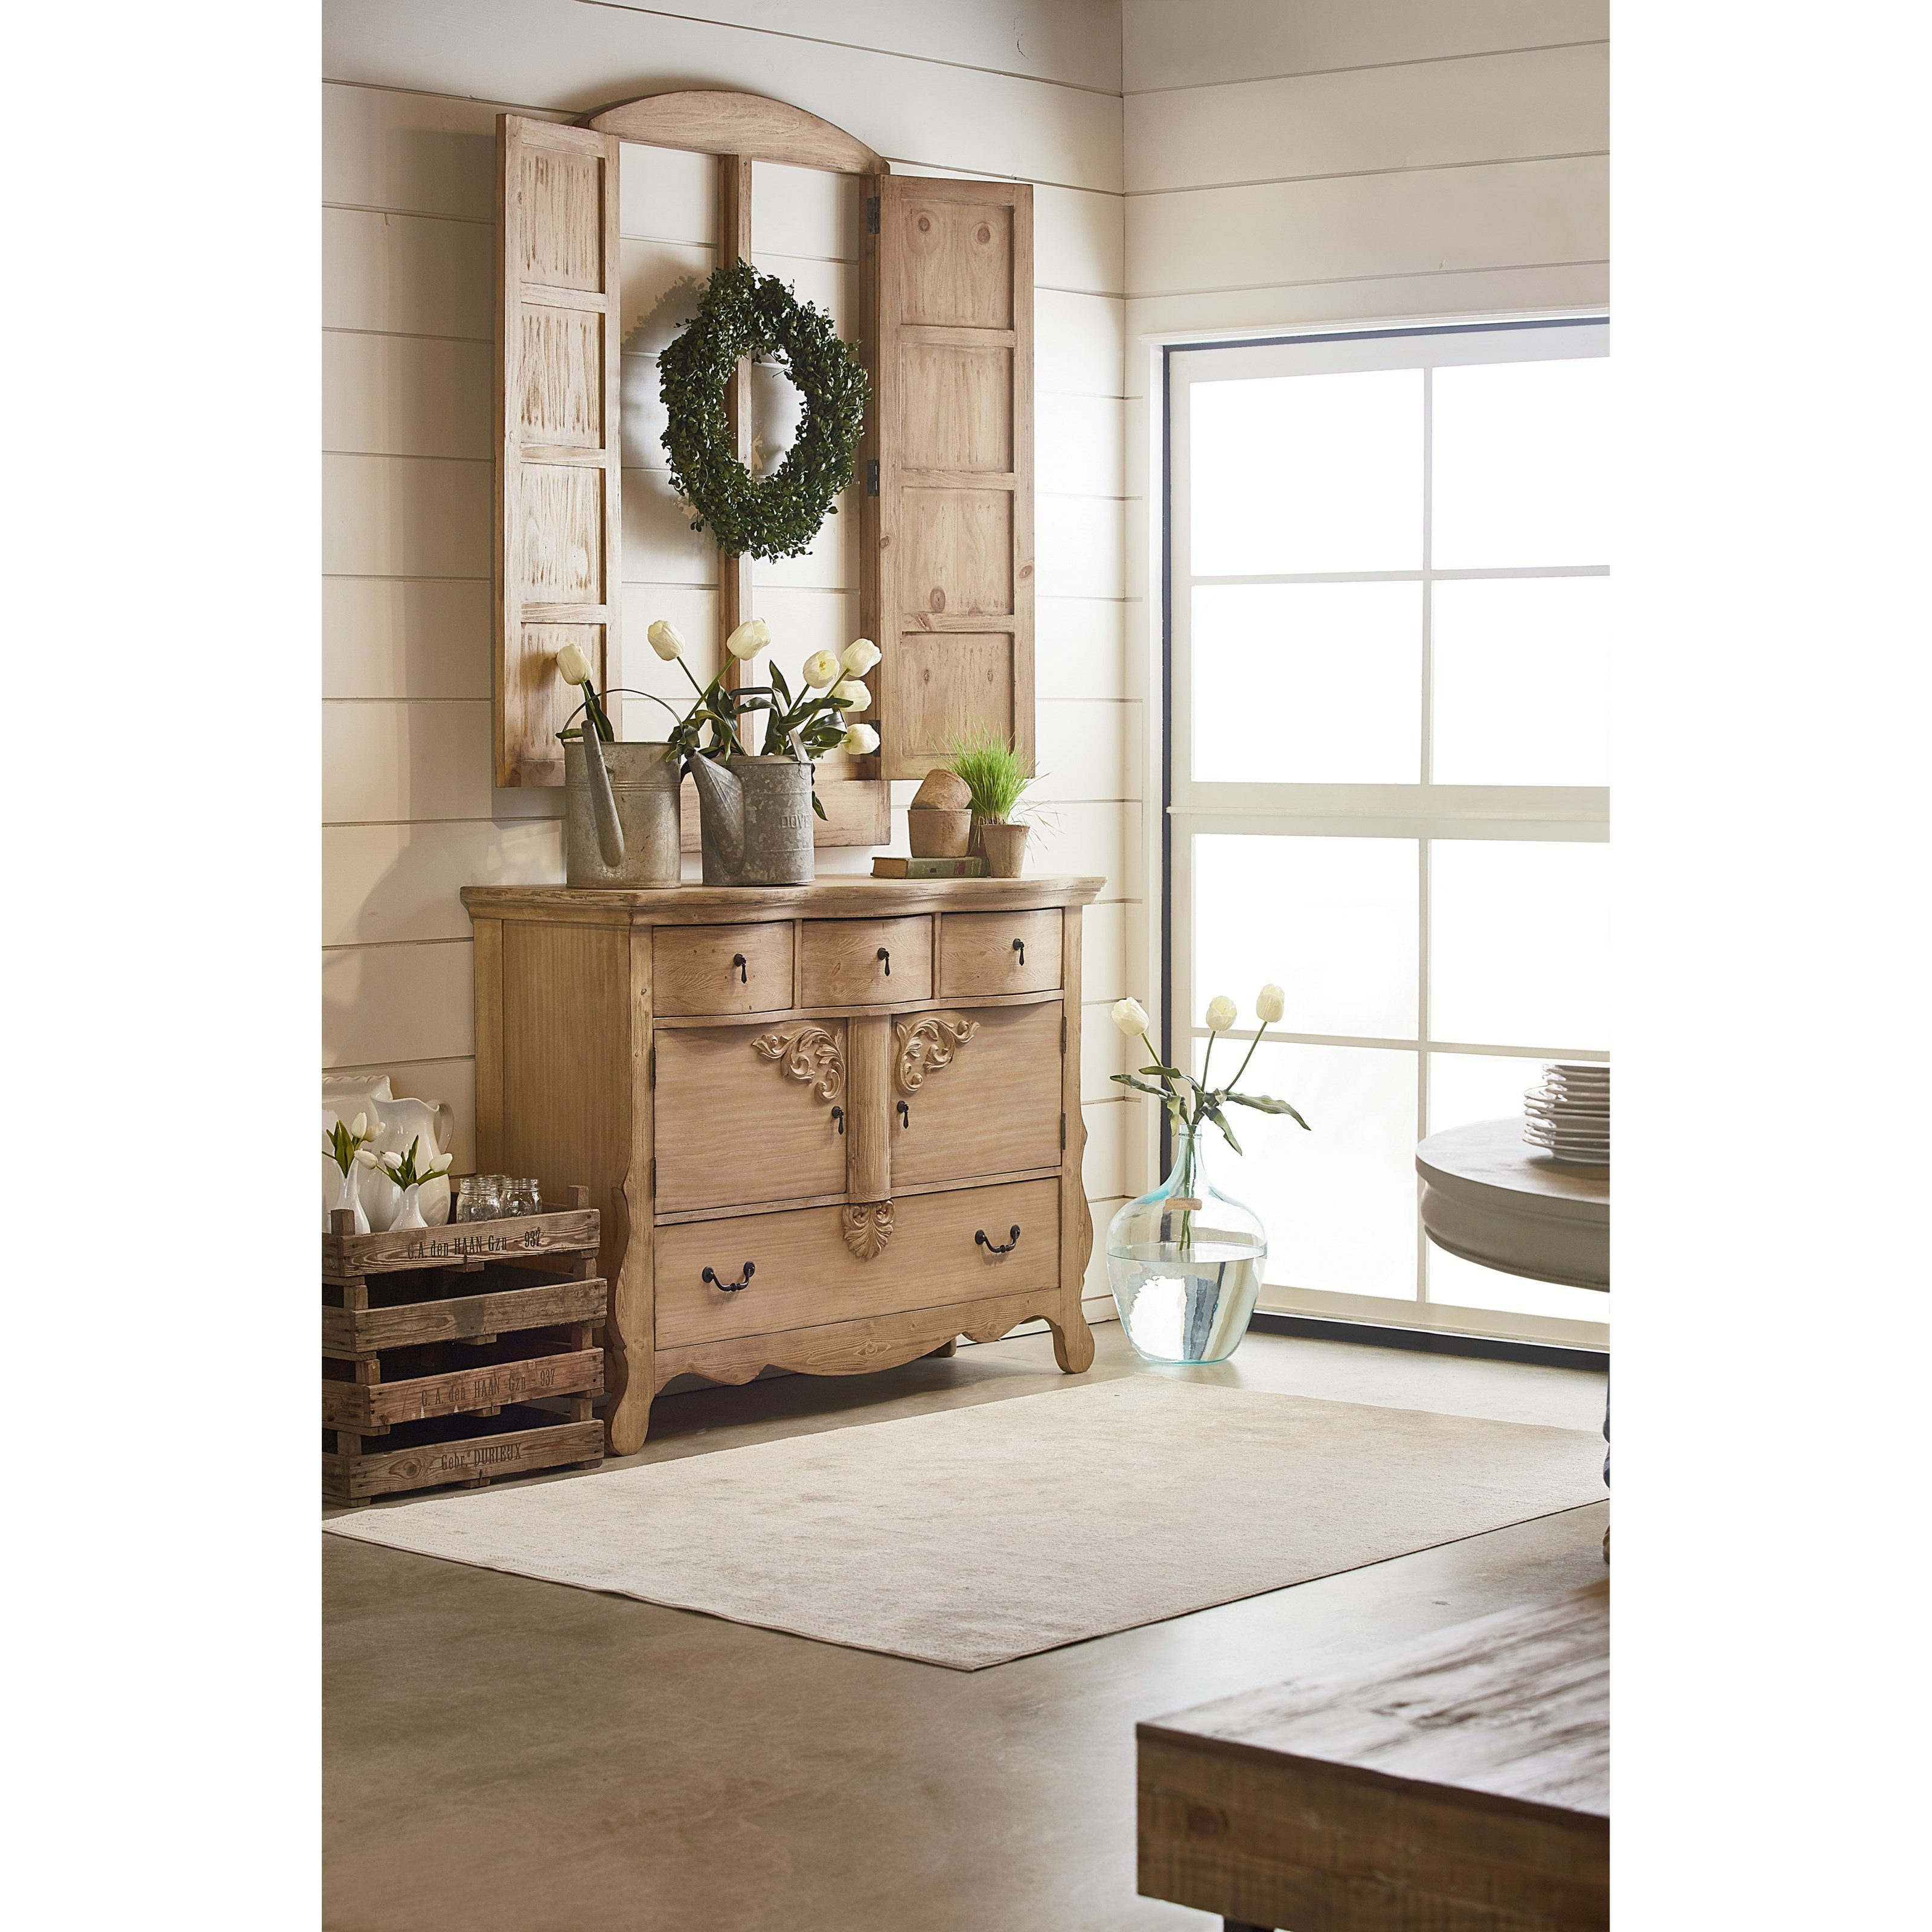 golden era sideboard chest by magnolia home by joanna gaines